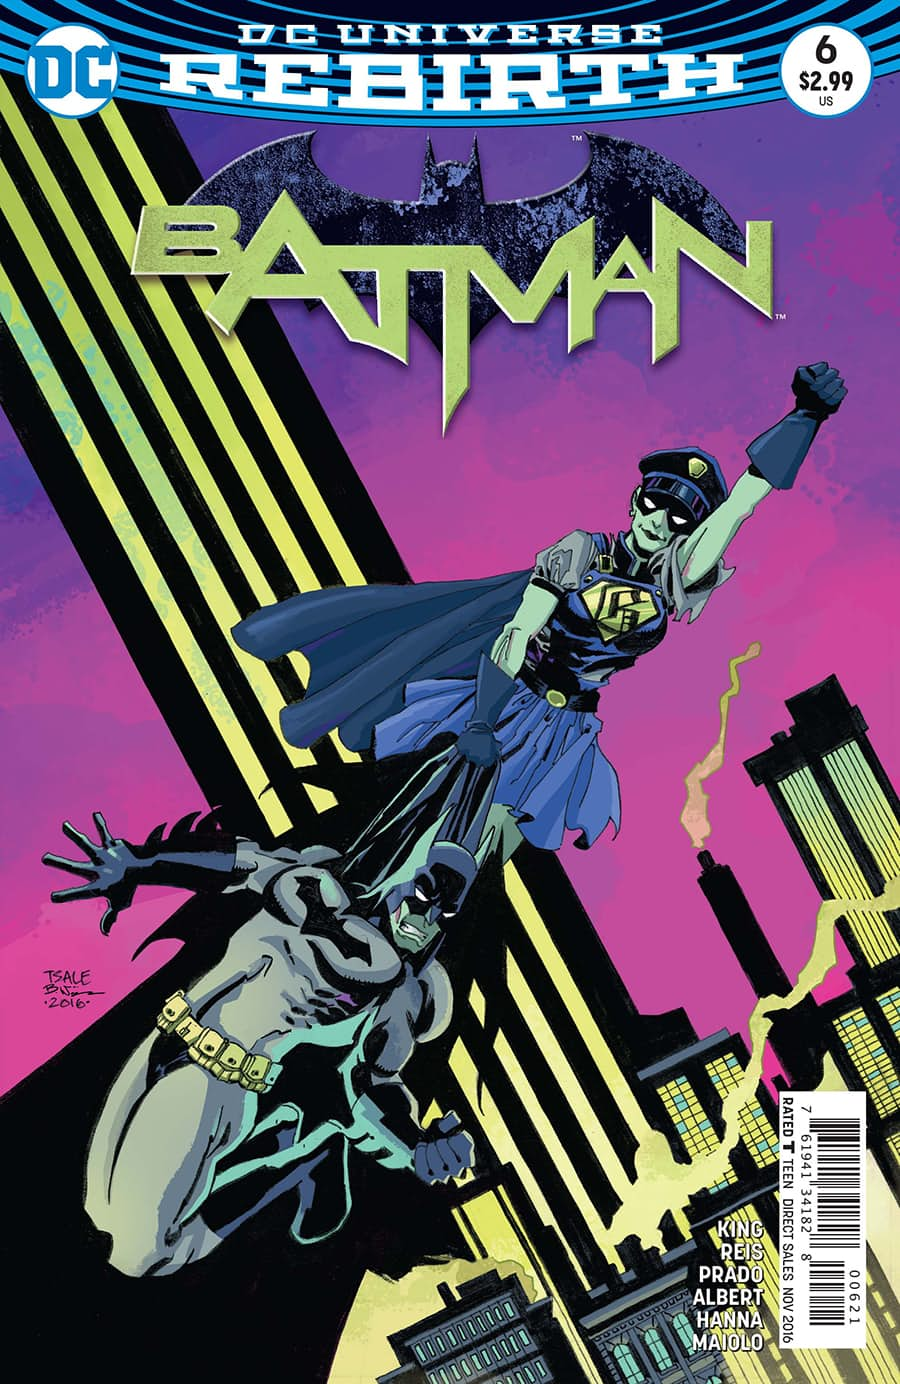 Preview: Batman #6 Dark Knight News